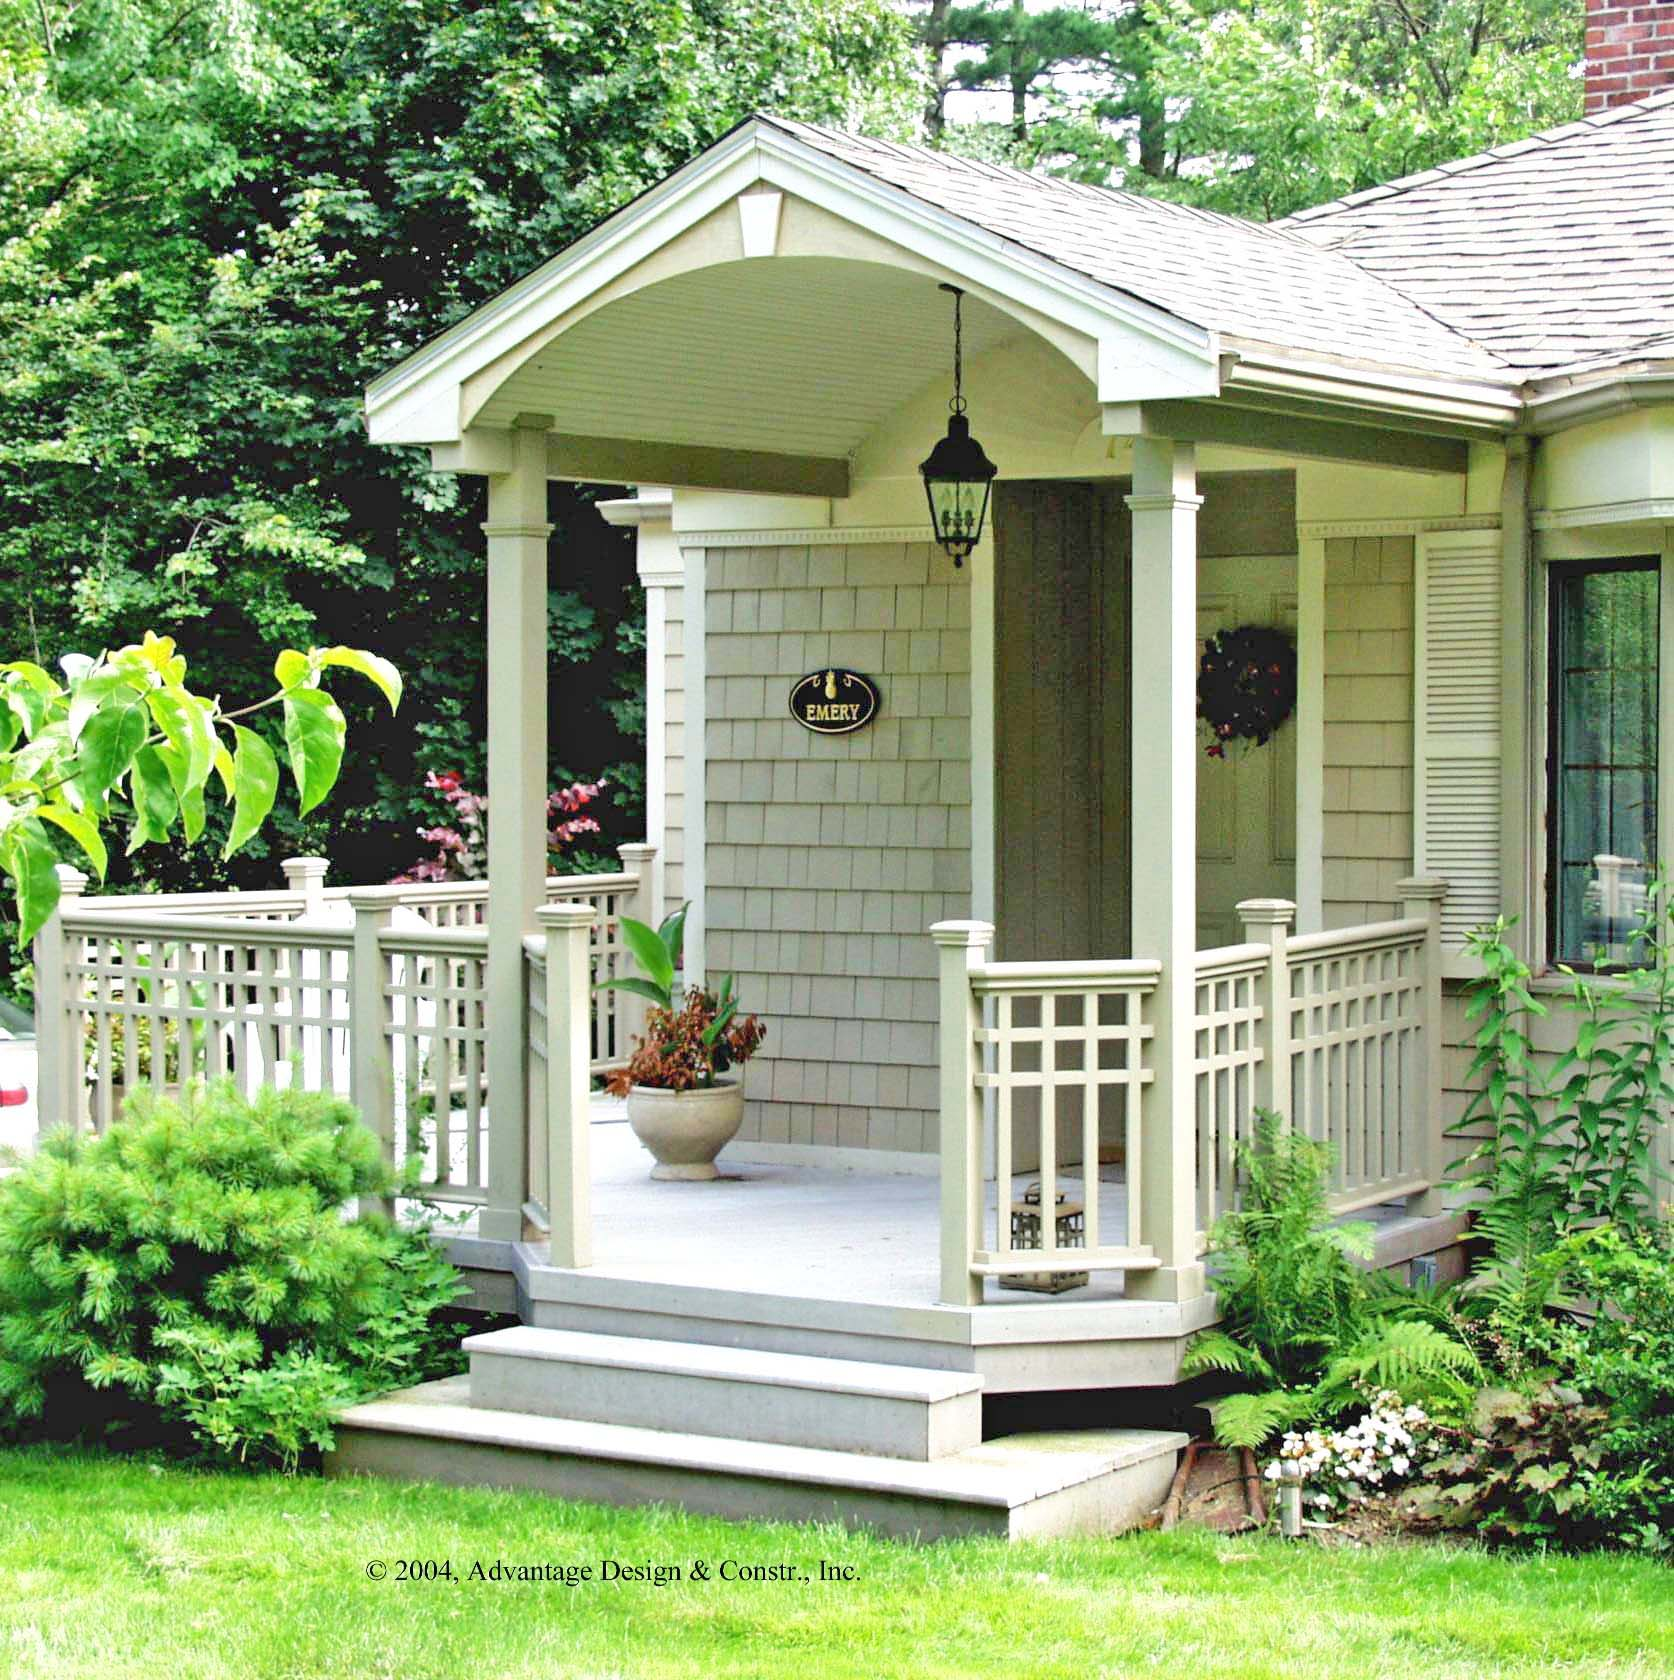 Home Design Ideas Pictures: Six Kinds Of Porches For Your Home